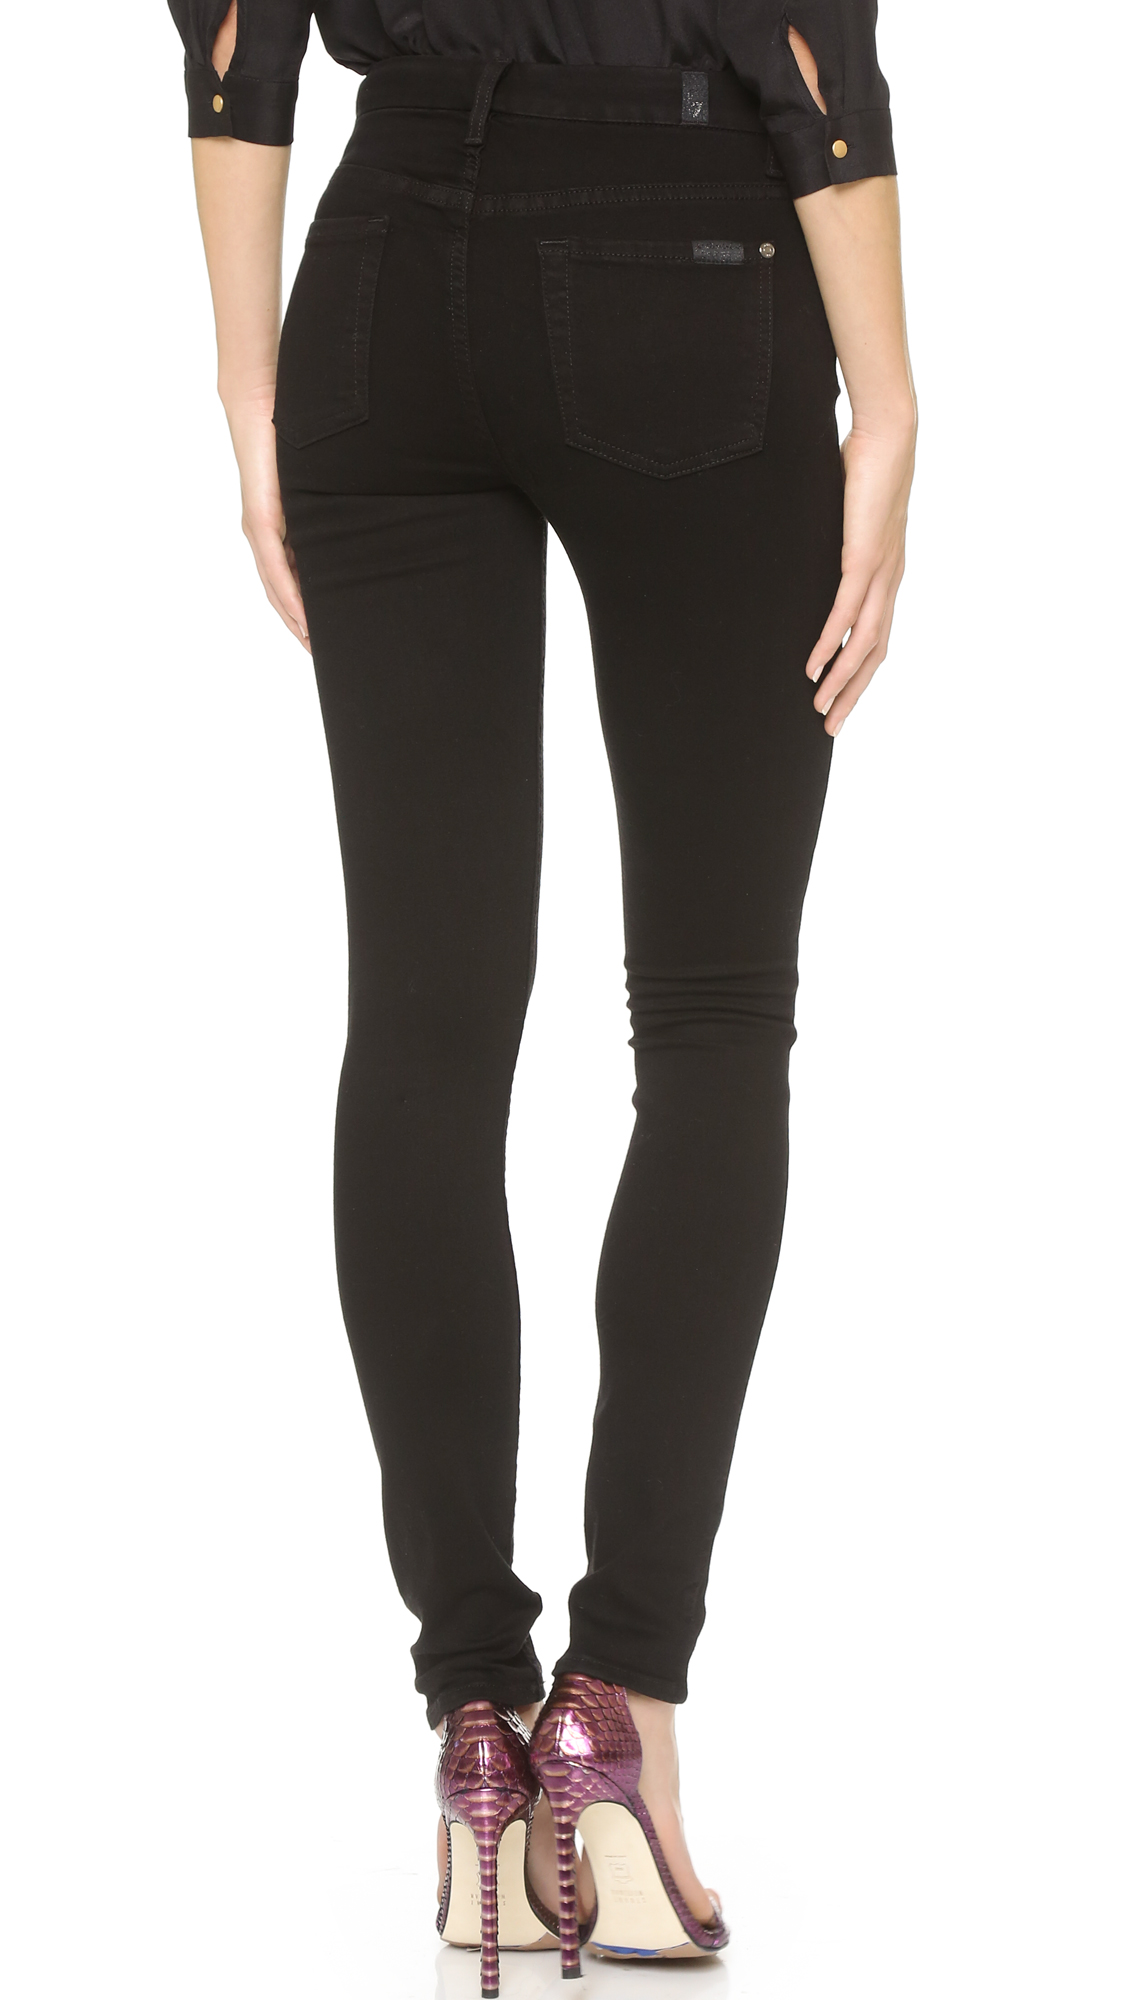 7 For All Mankind The High Waist Slim Illusion Luxe Skinny Jeans ...